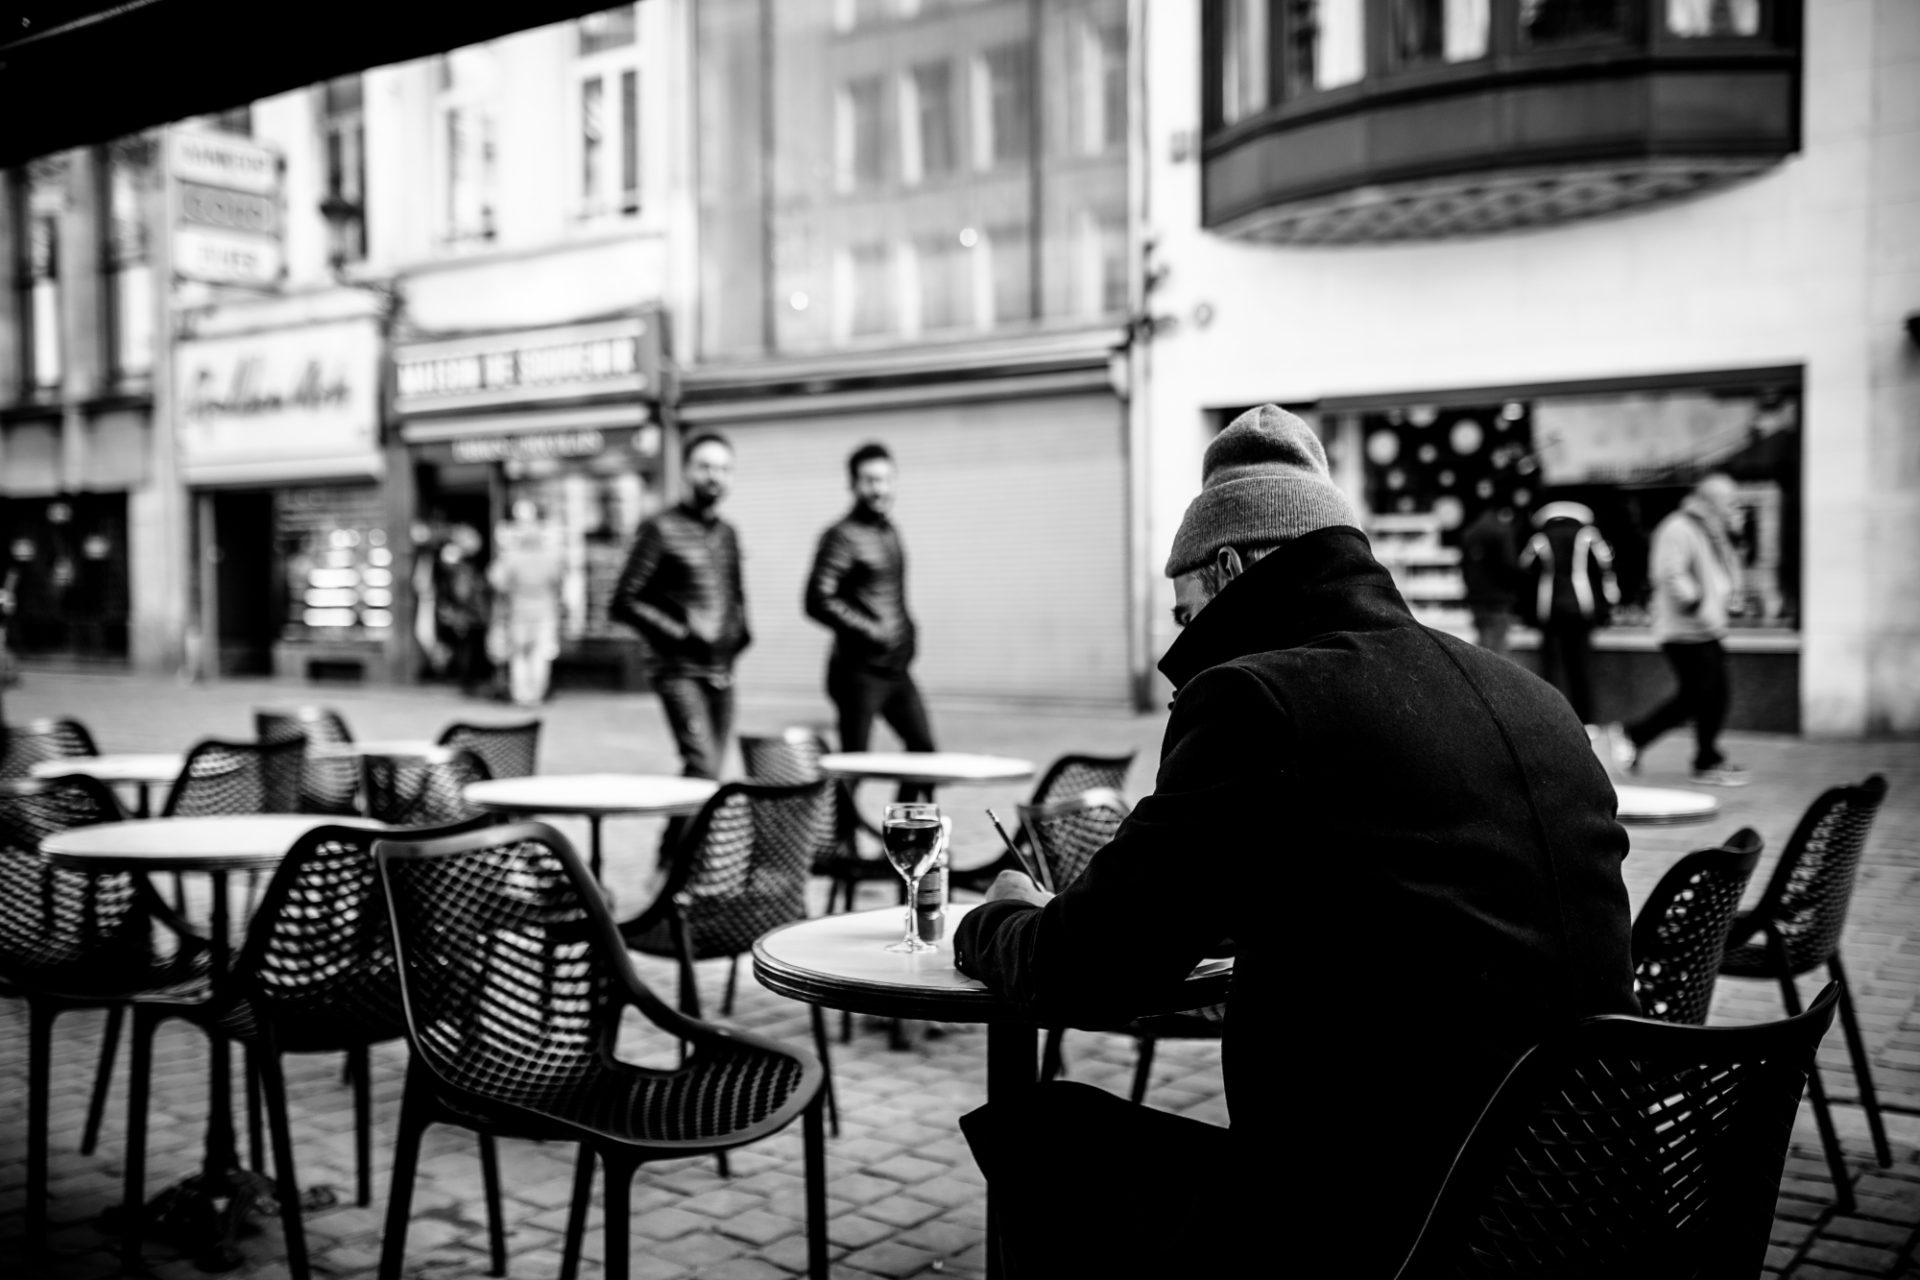 Brussels_027